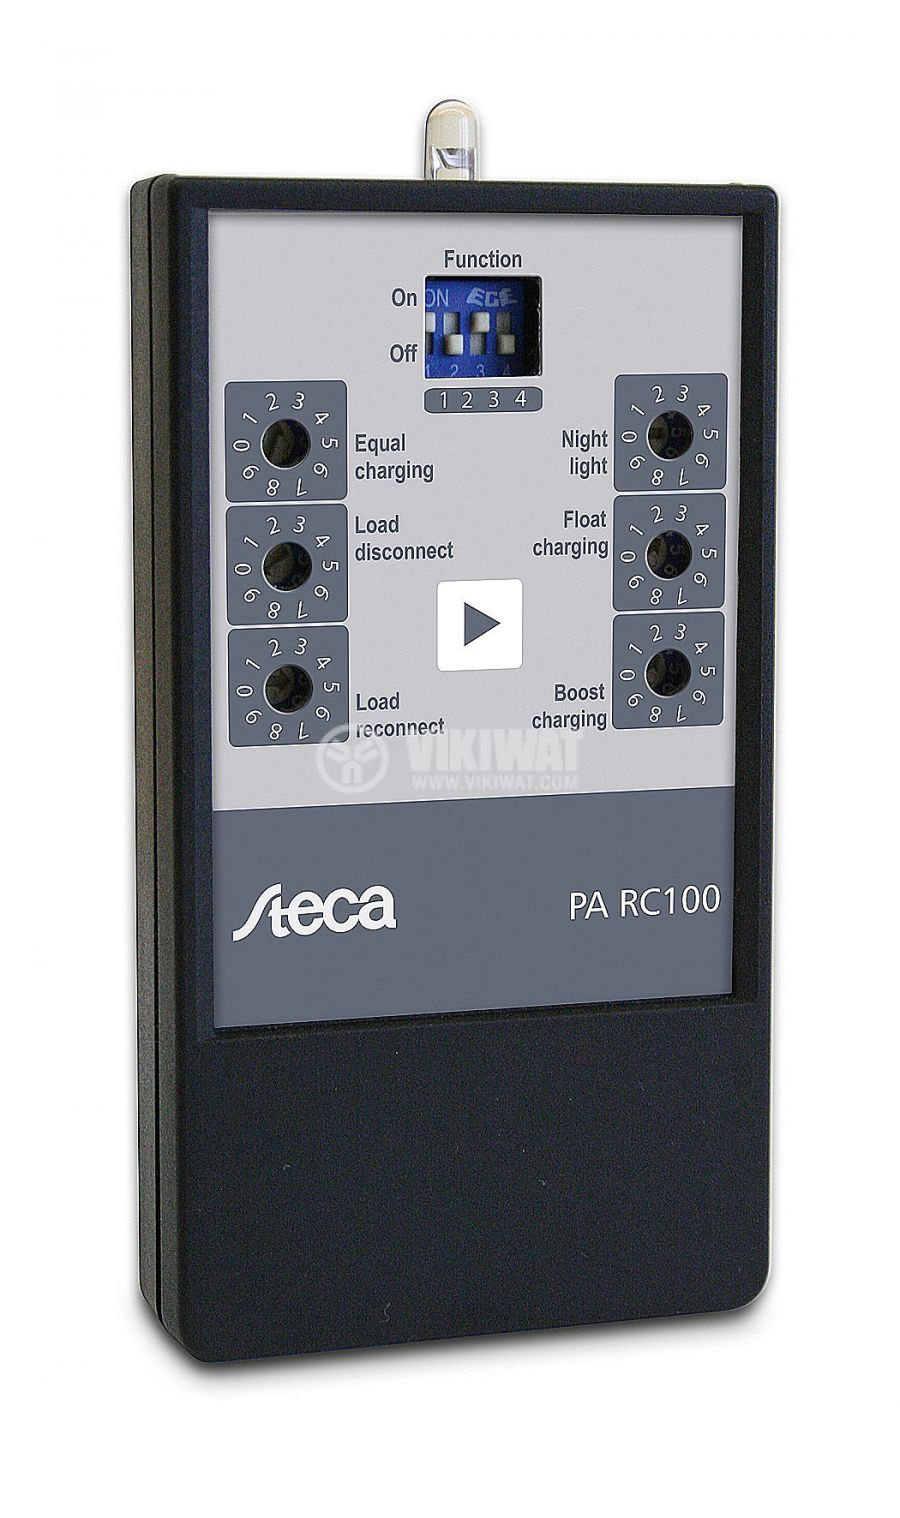 Remote control for programming solar controllers, PA RC100